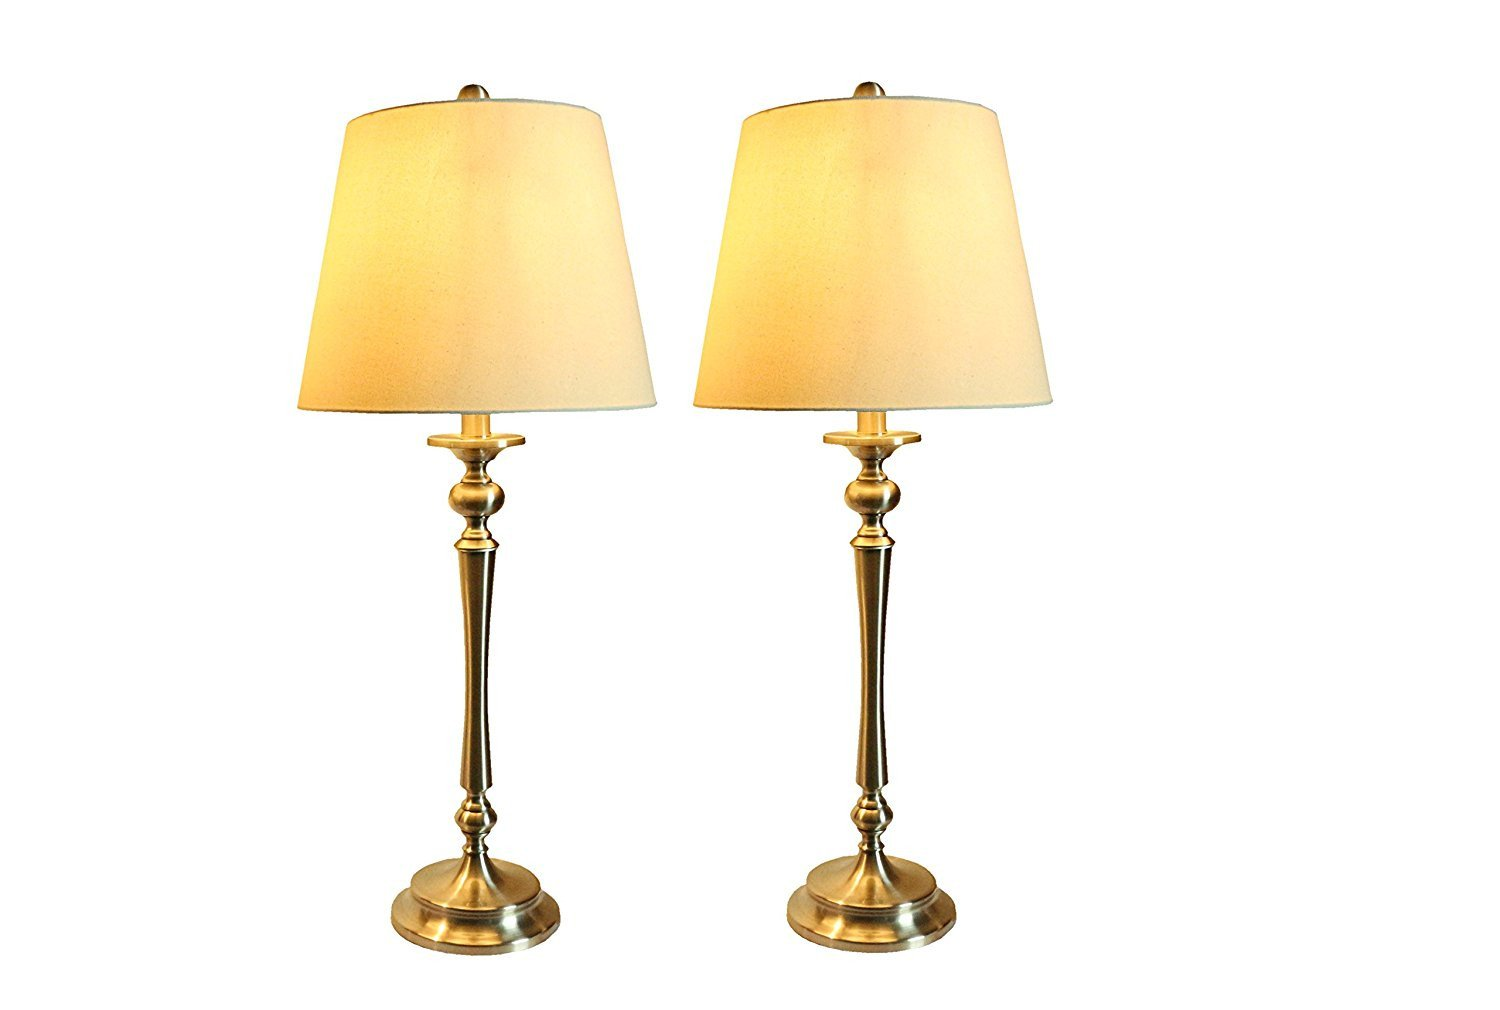 lamps marziafrozen images table beautiful nickel brushed of lamp modern home interior unique curve